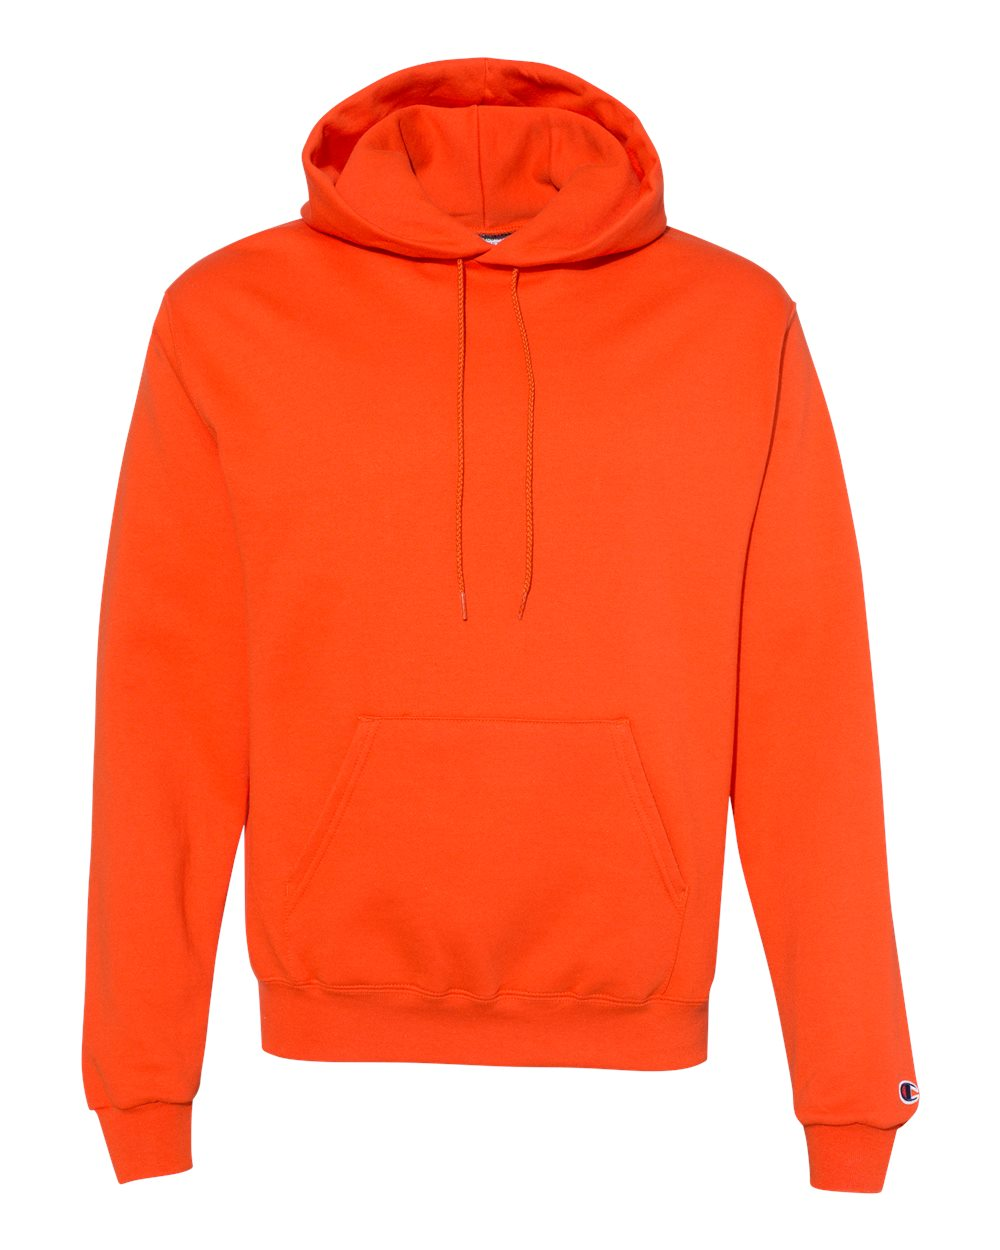 Champion-Mens-Double-Dry-Eco-Hooded-Sweatshirt-Hoodie-Pullover-S700-up-to-3XL miniature 33